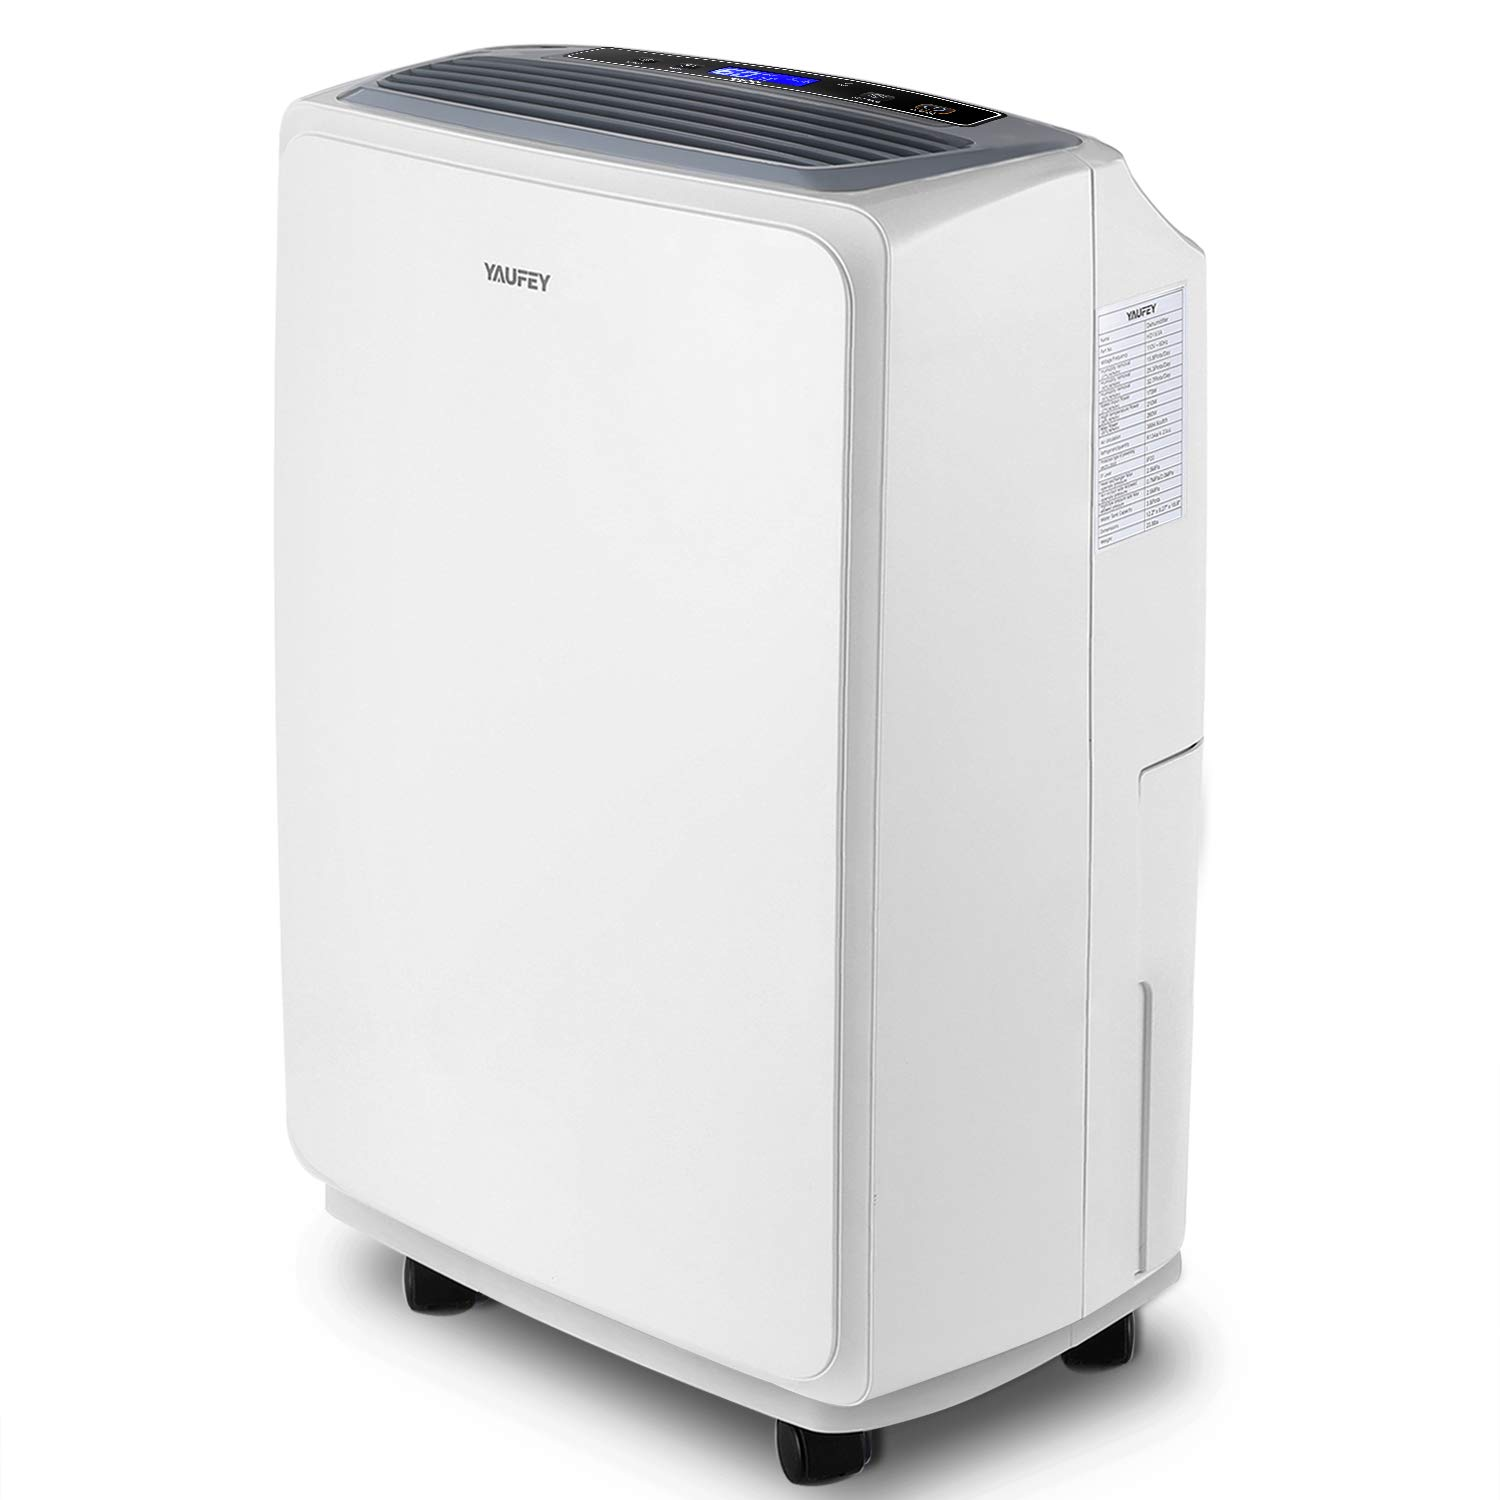 yaufey 30 Pint Dehumidifier for Home Basements Bedroom Garage, Mid-Size Portable with Continuous Drain Hose Outlet and Wheel, 4 Gallons/Day Intelligent Humidity Control for Space Up to 1500 Sq Ft by yaufey